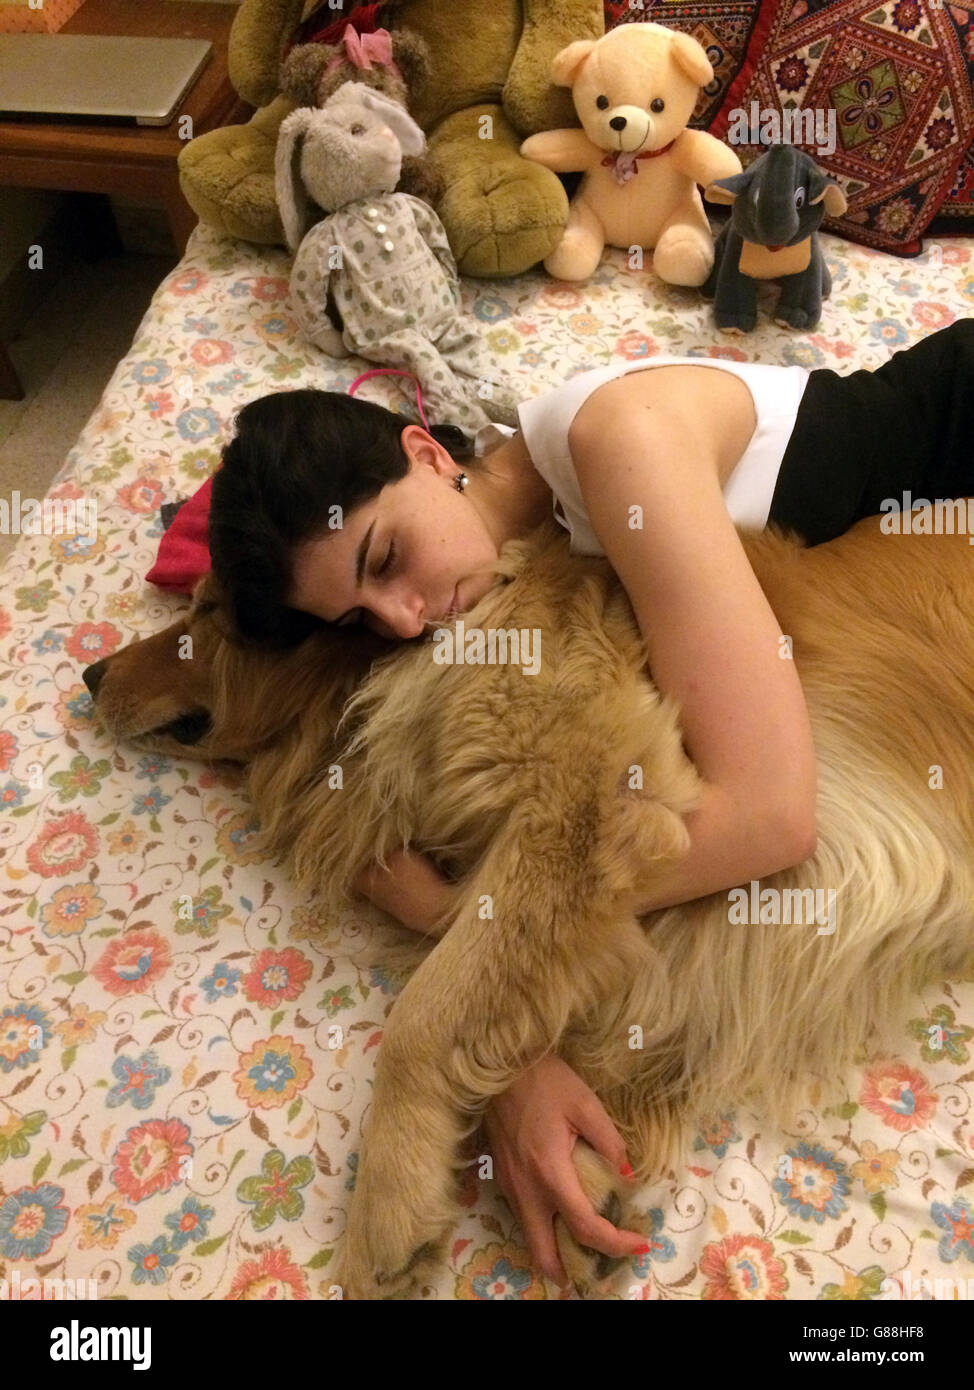 woman sleeping on bed with golden retriever dog - Stock Image